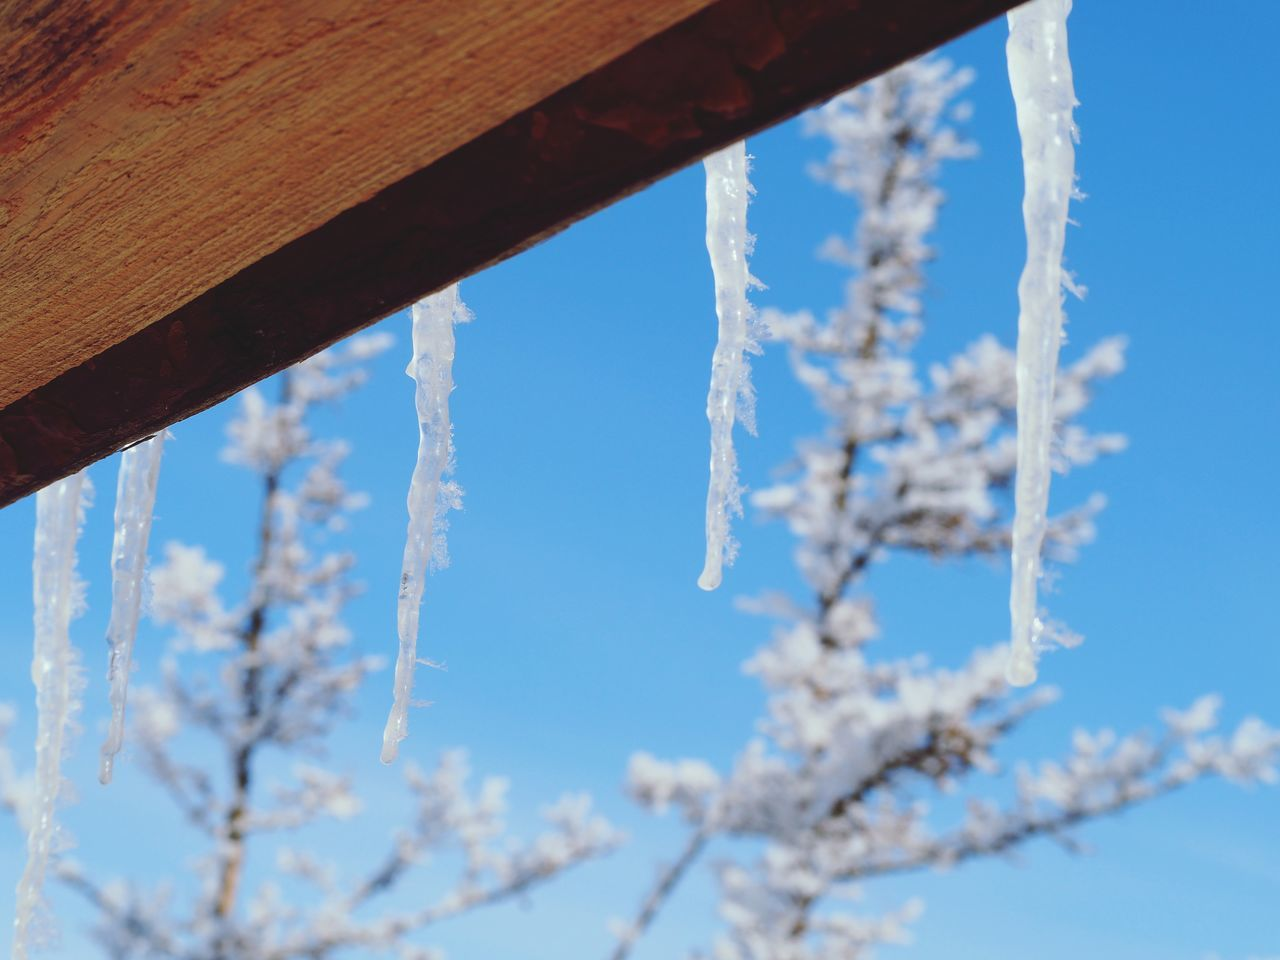 Close-up EyeEm Nature Lover EyeEm Best Shots Travel EyeEmNewHere Window Snow Winter Snowy Days... Snowflake❄️ Ice Icicles Icicles Hanging Icicle Beauty Icicles Up Close Neighborhood Map